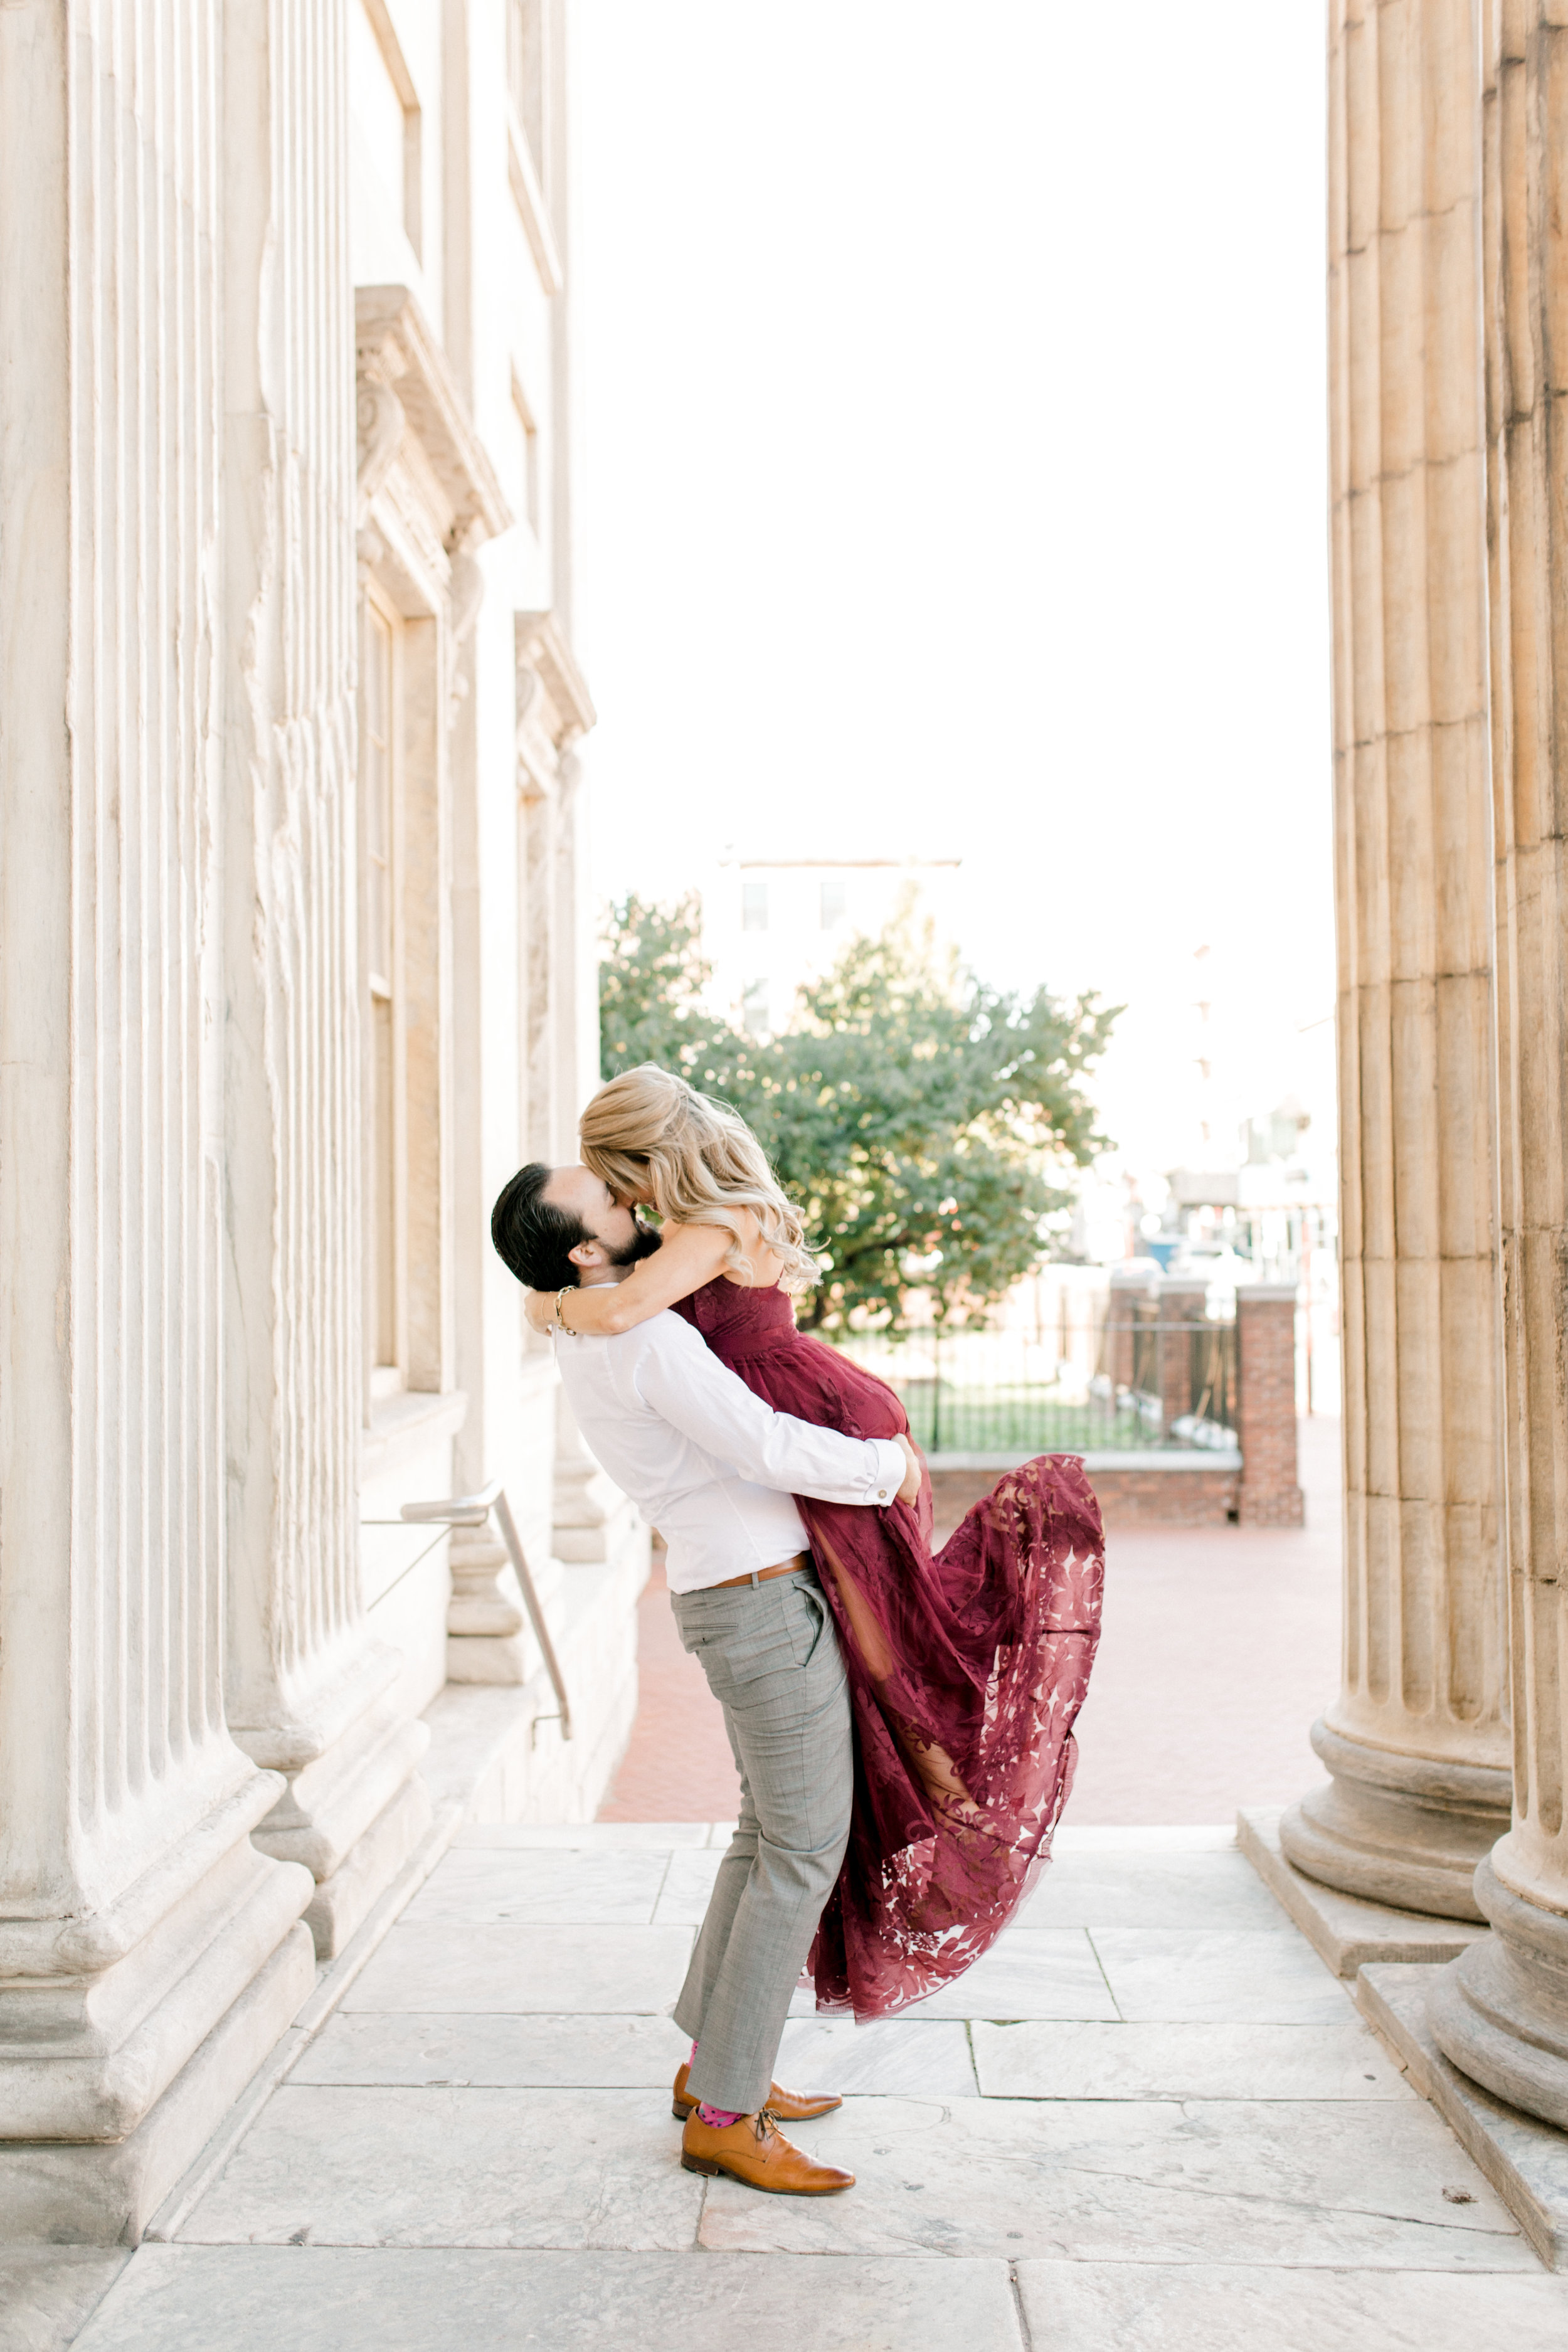 A romantic gesture, Dale lifts Nikki in the air for their bright fall engagement session in Old City, Philadelphia.